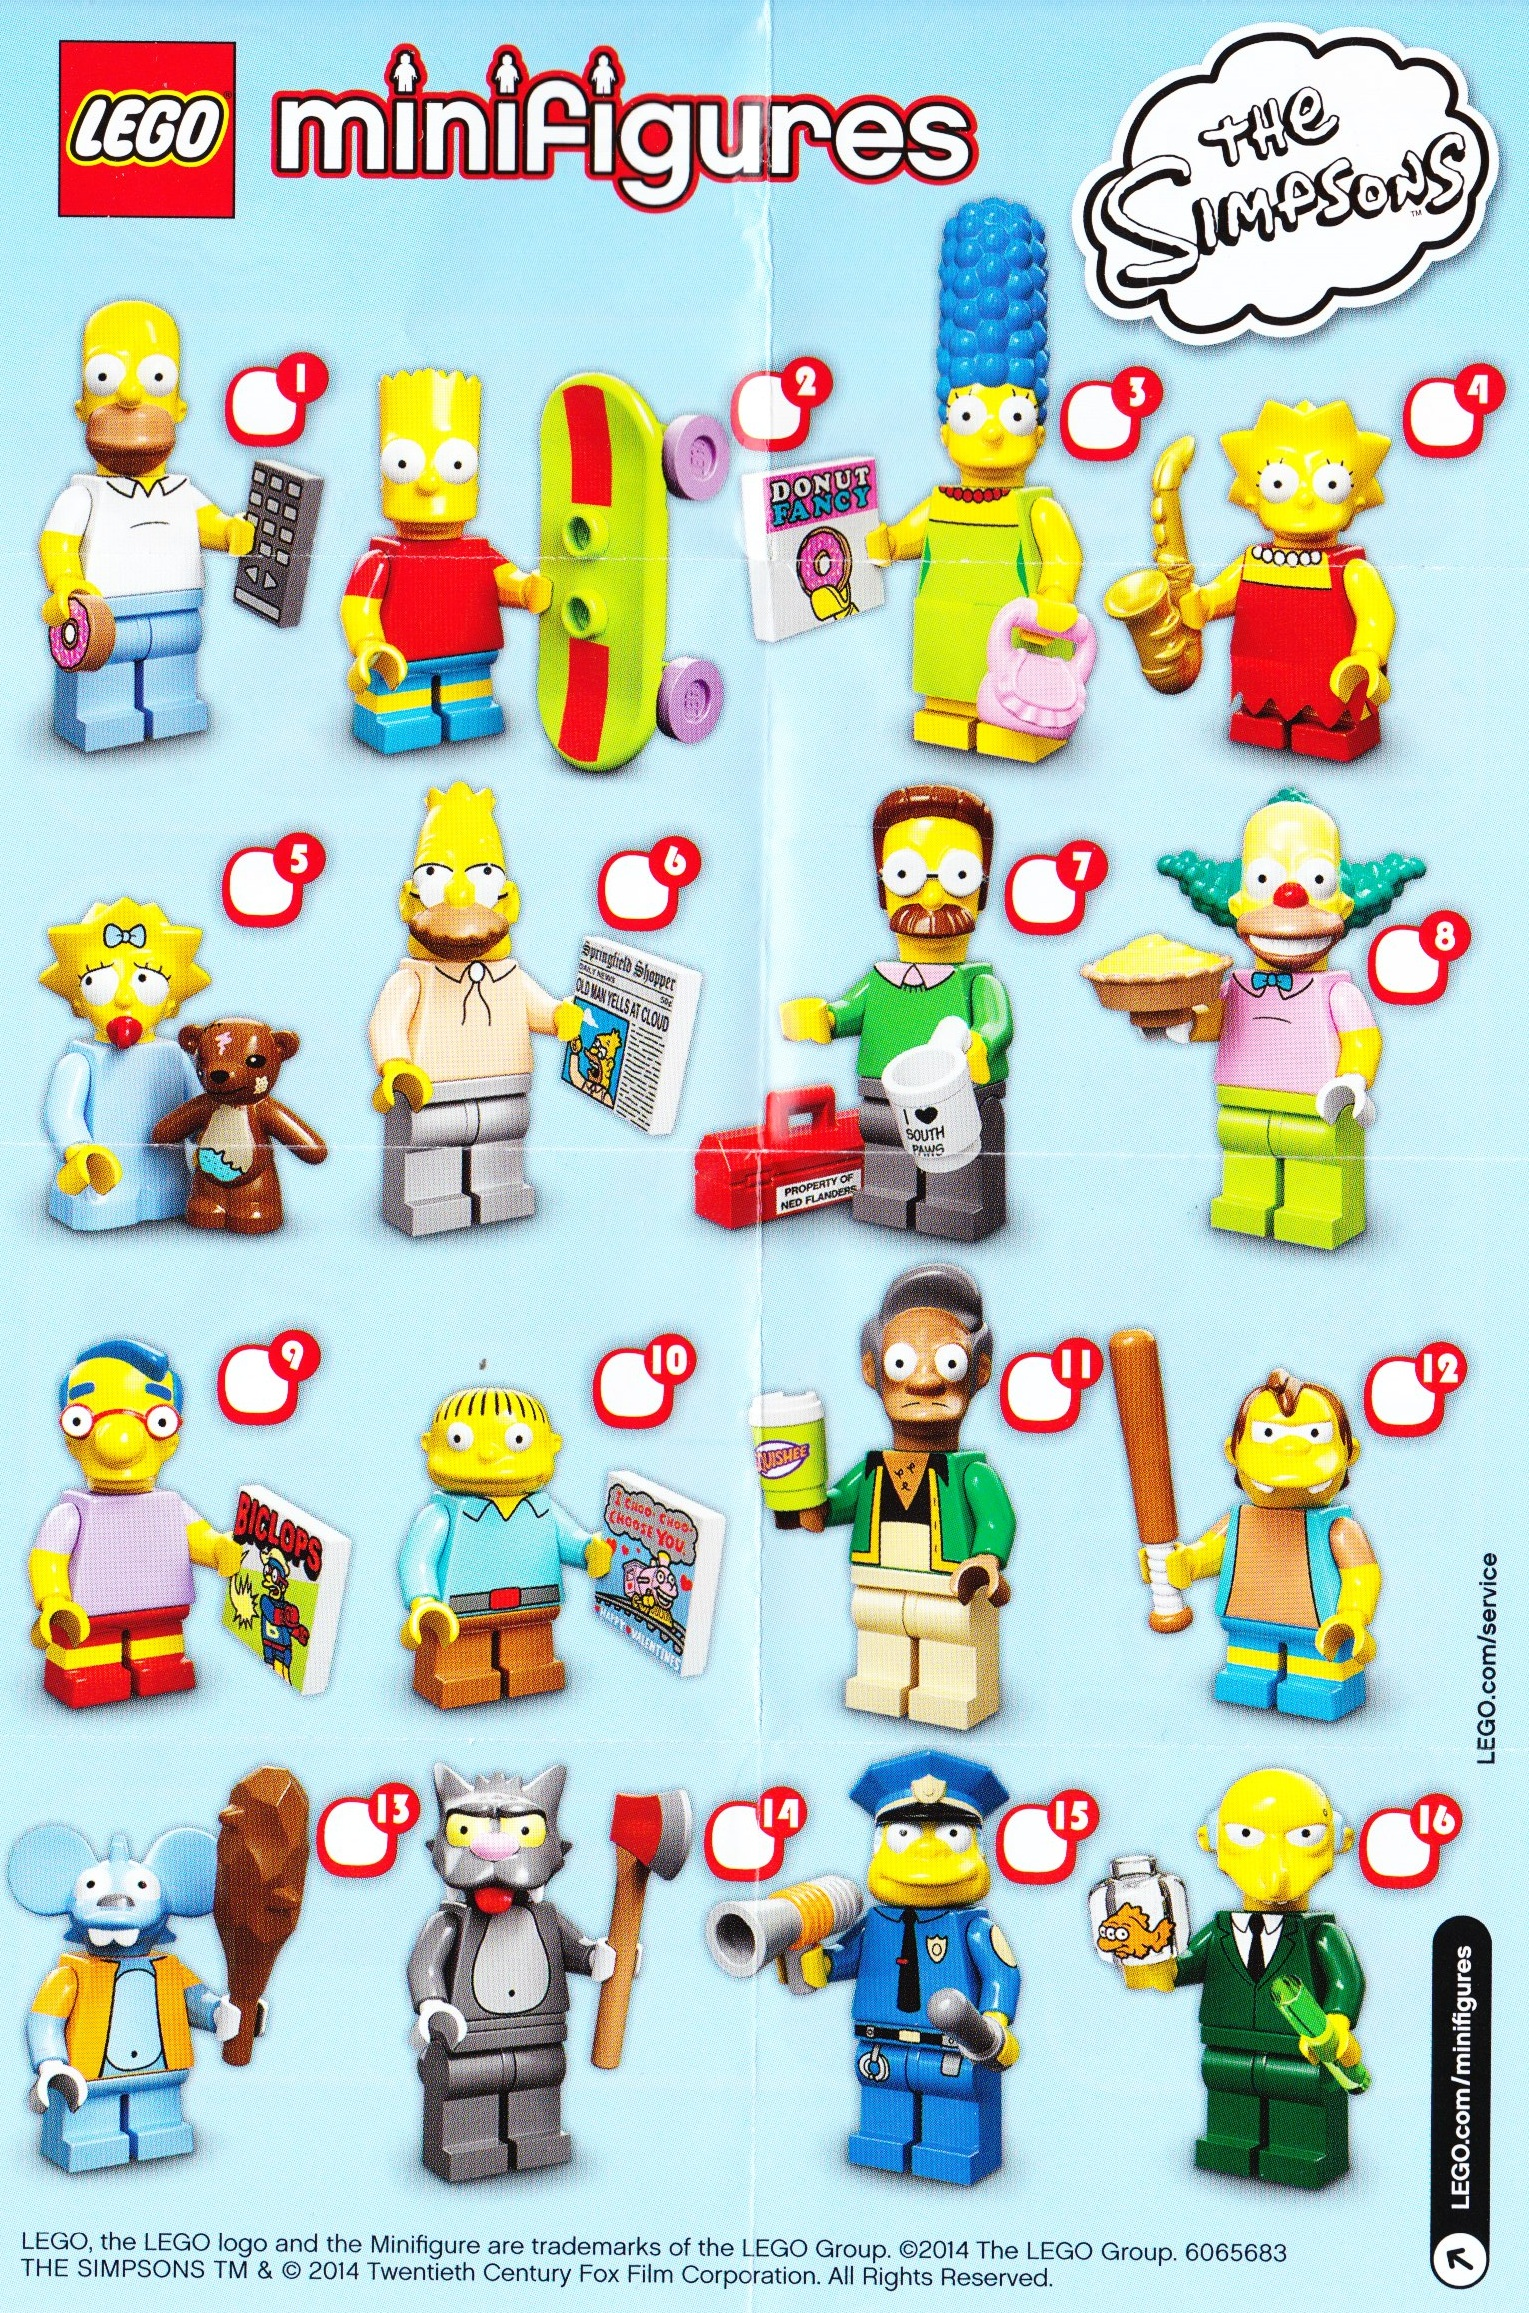 minifigures-simpsons-lego